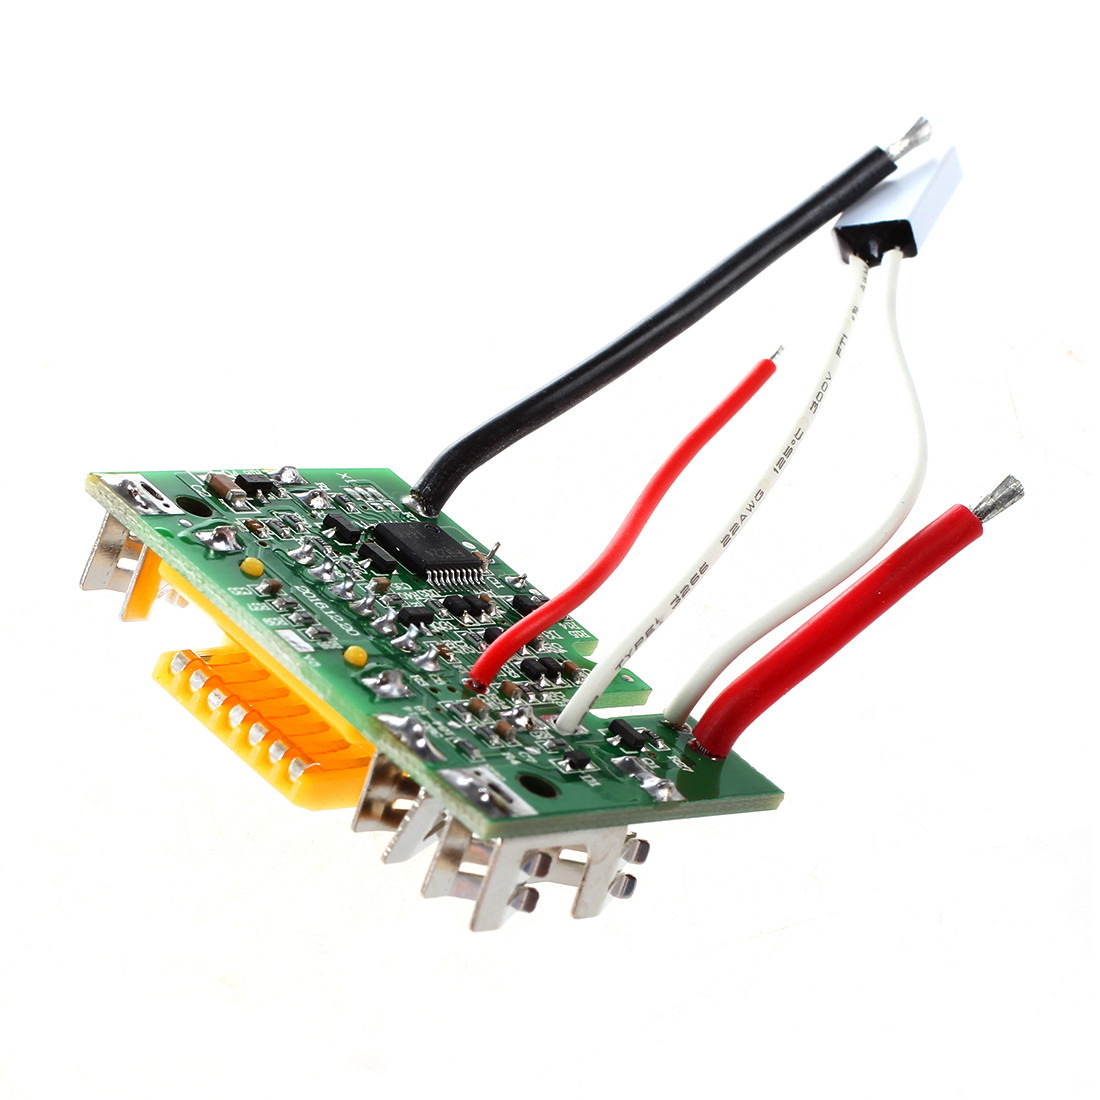 18v Lithium Battery Pcm Pcb Li Ion Protect Circuit Module Board Diy Protection Products For Makita Drill Green In Chargers From Consumer Electronics On Alibaba